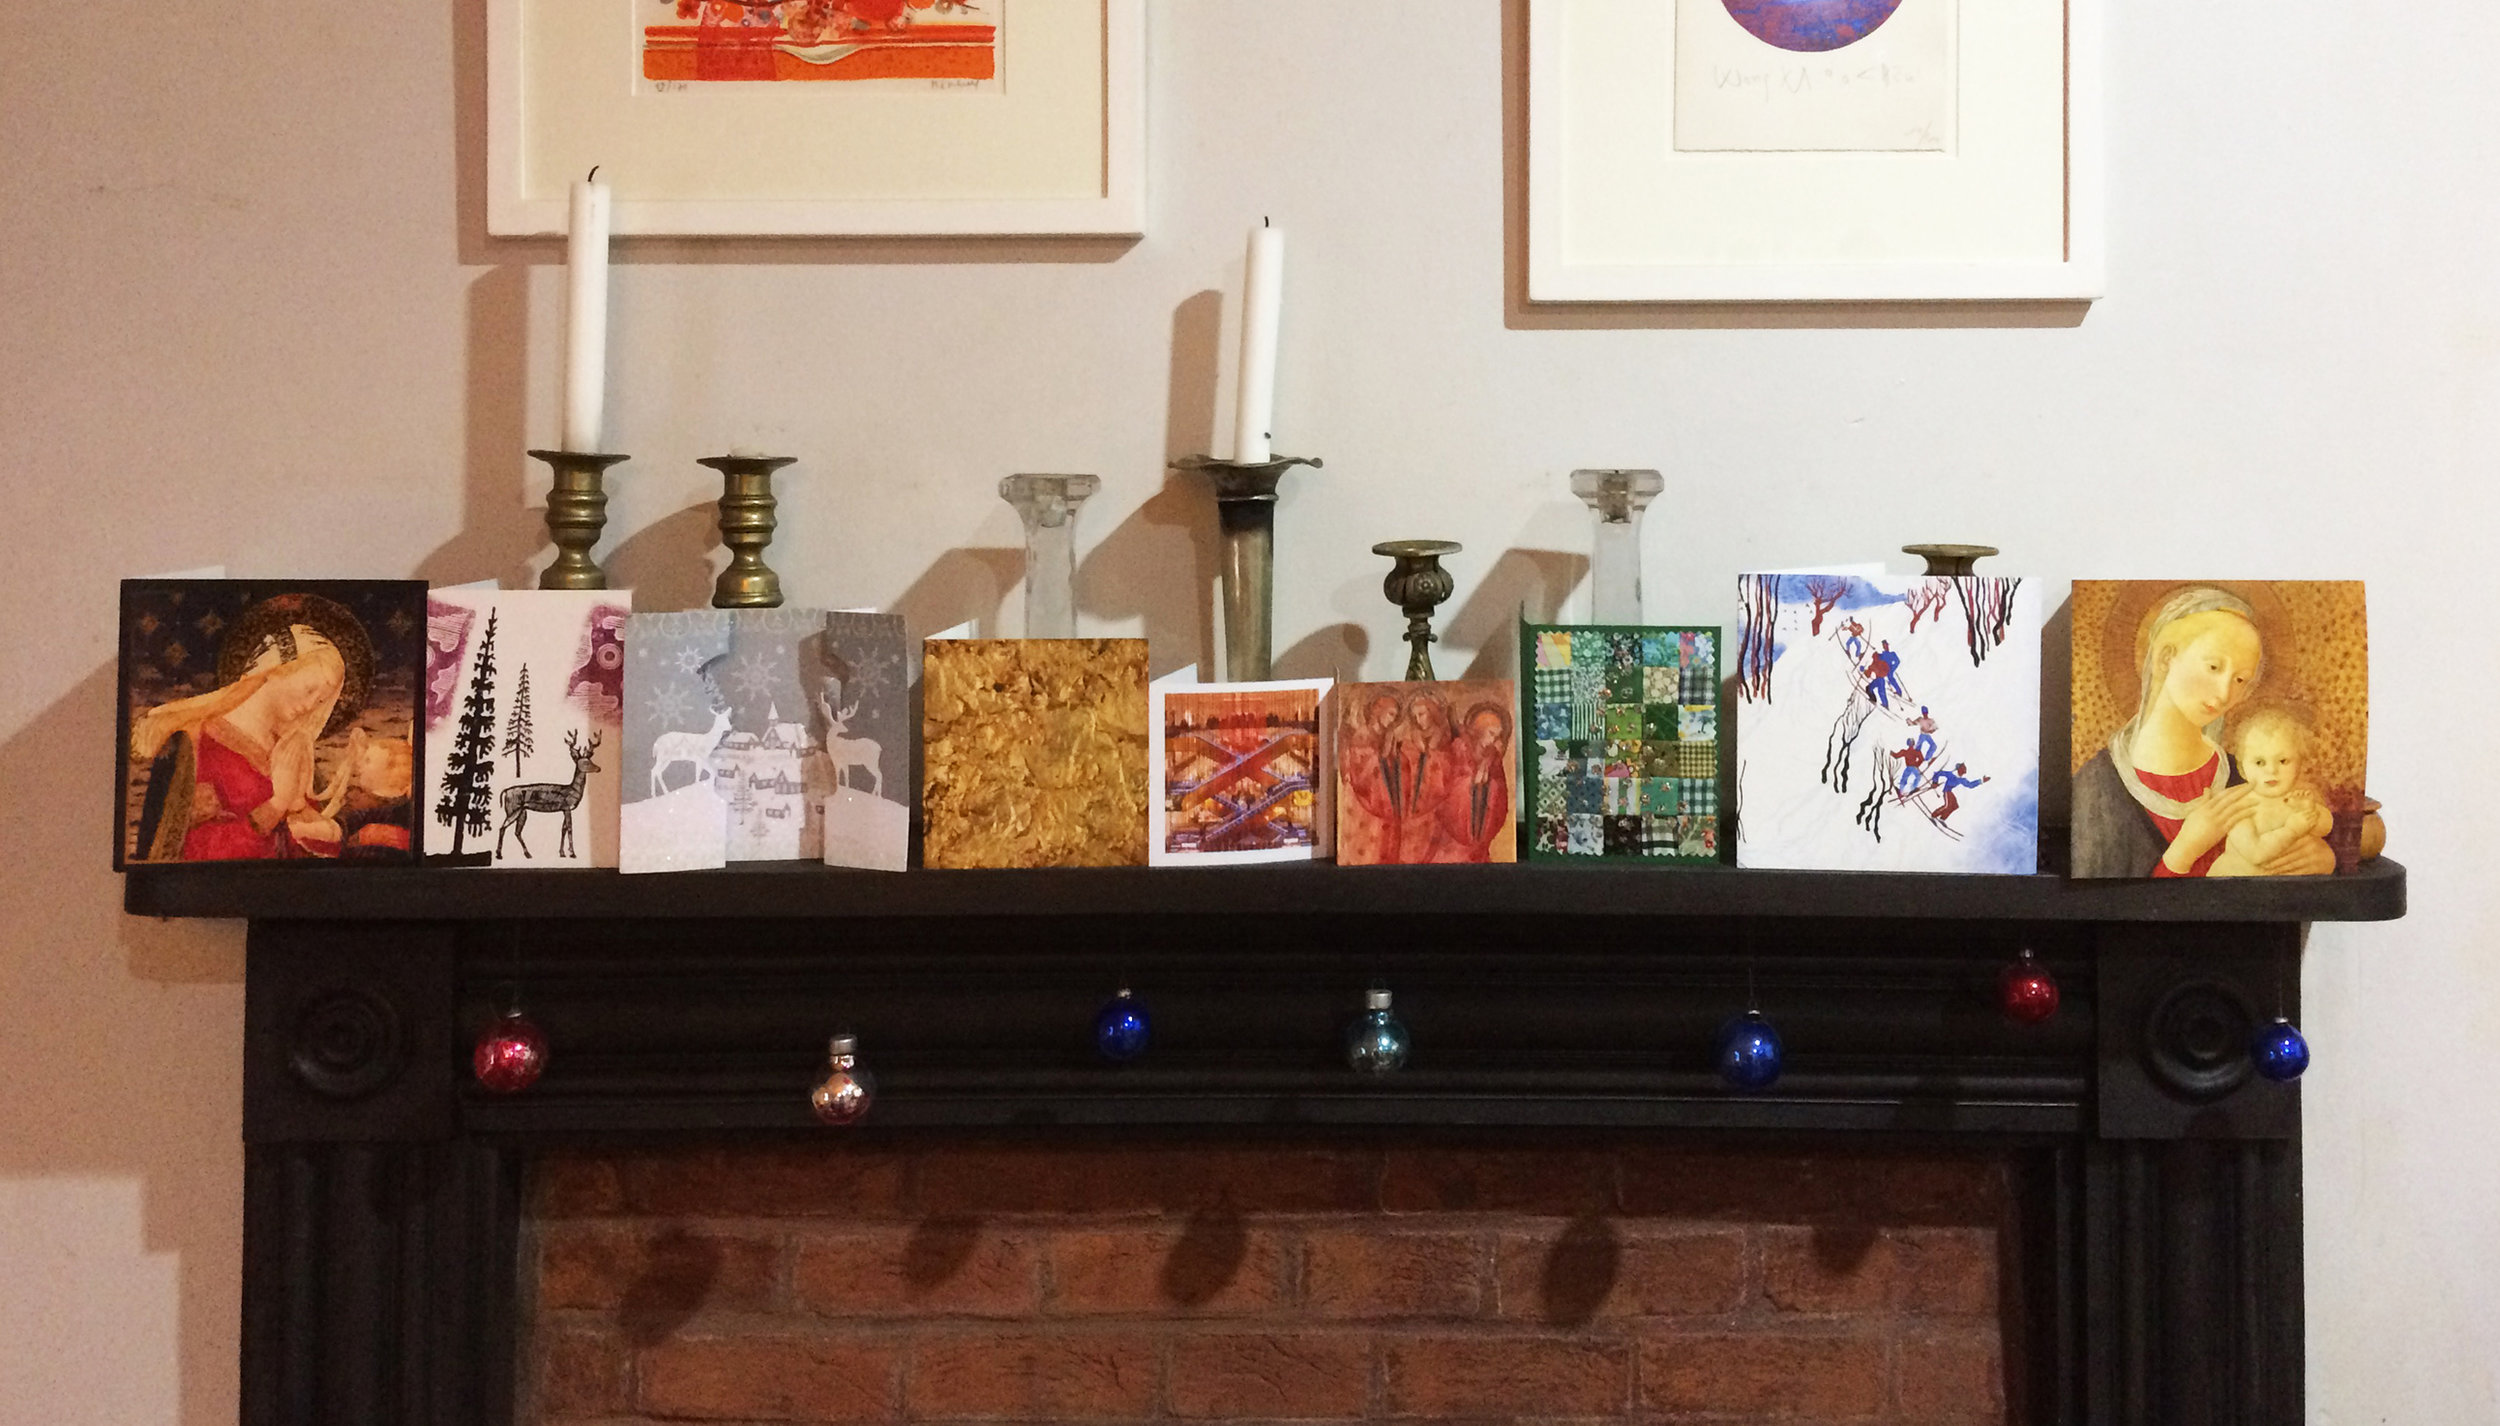 Some good ones on the mantlepiece, in case you're in doubt - square, portrait, other, sq., sq., sq., portrait, sq., sq.